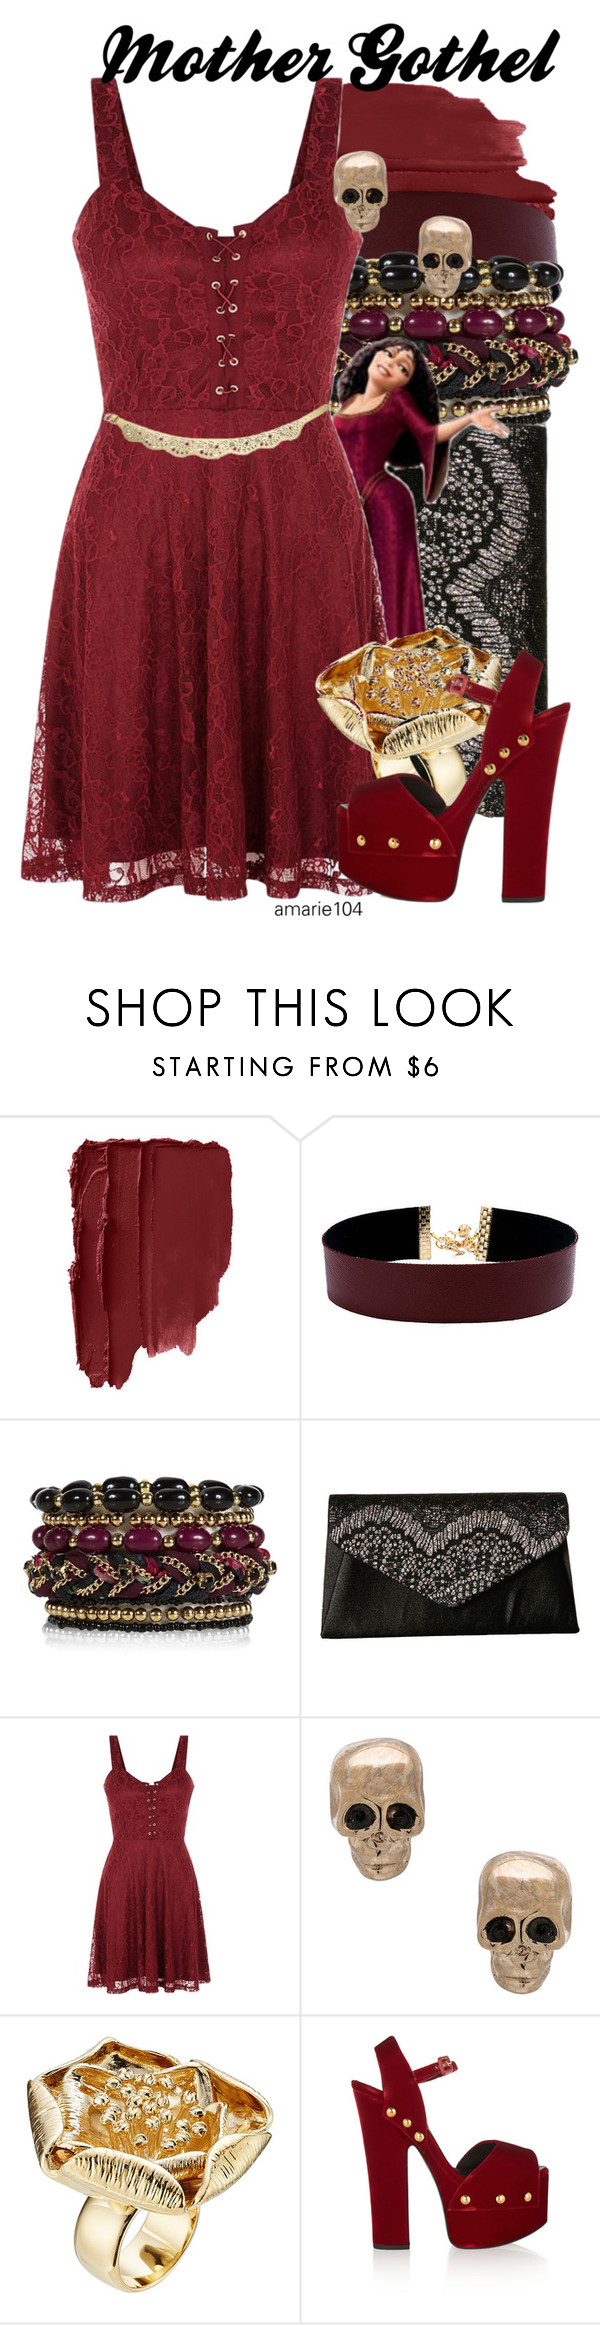 """""""Mother Gothel"""" by amarie104 ❤ liked on Polyvore featuring Vanessa Mooney, Jessica McClintock, Givenchy, Aurélie Bidermann, Giuseppe Zanotti and BCBGeneration"""